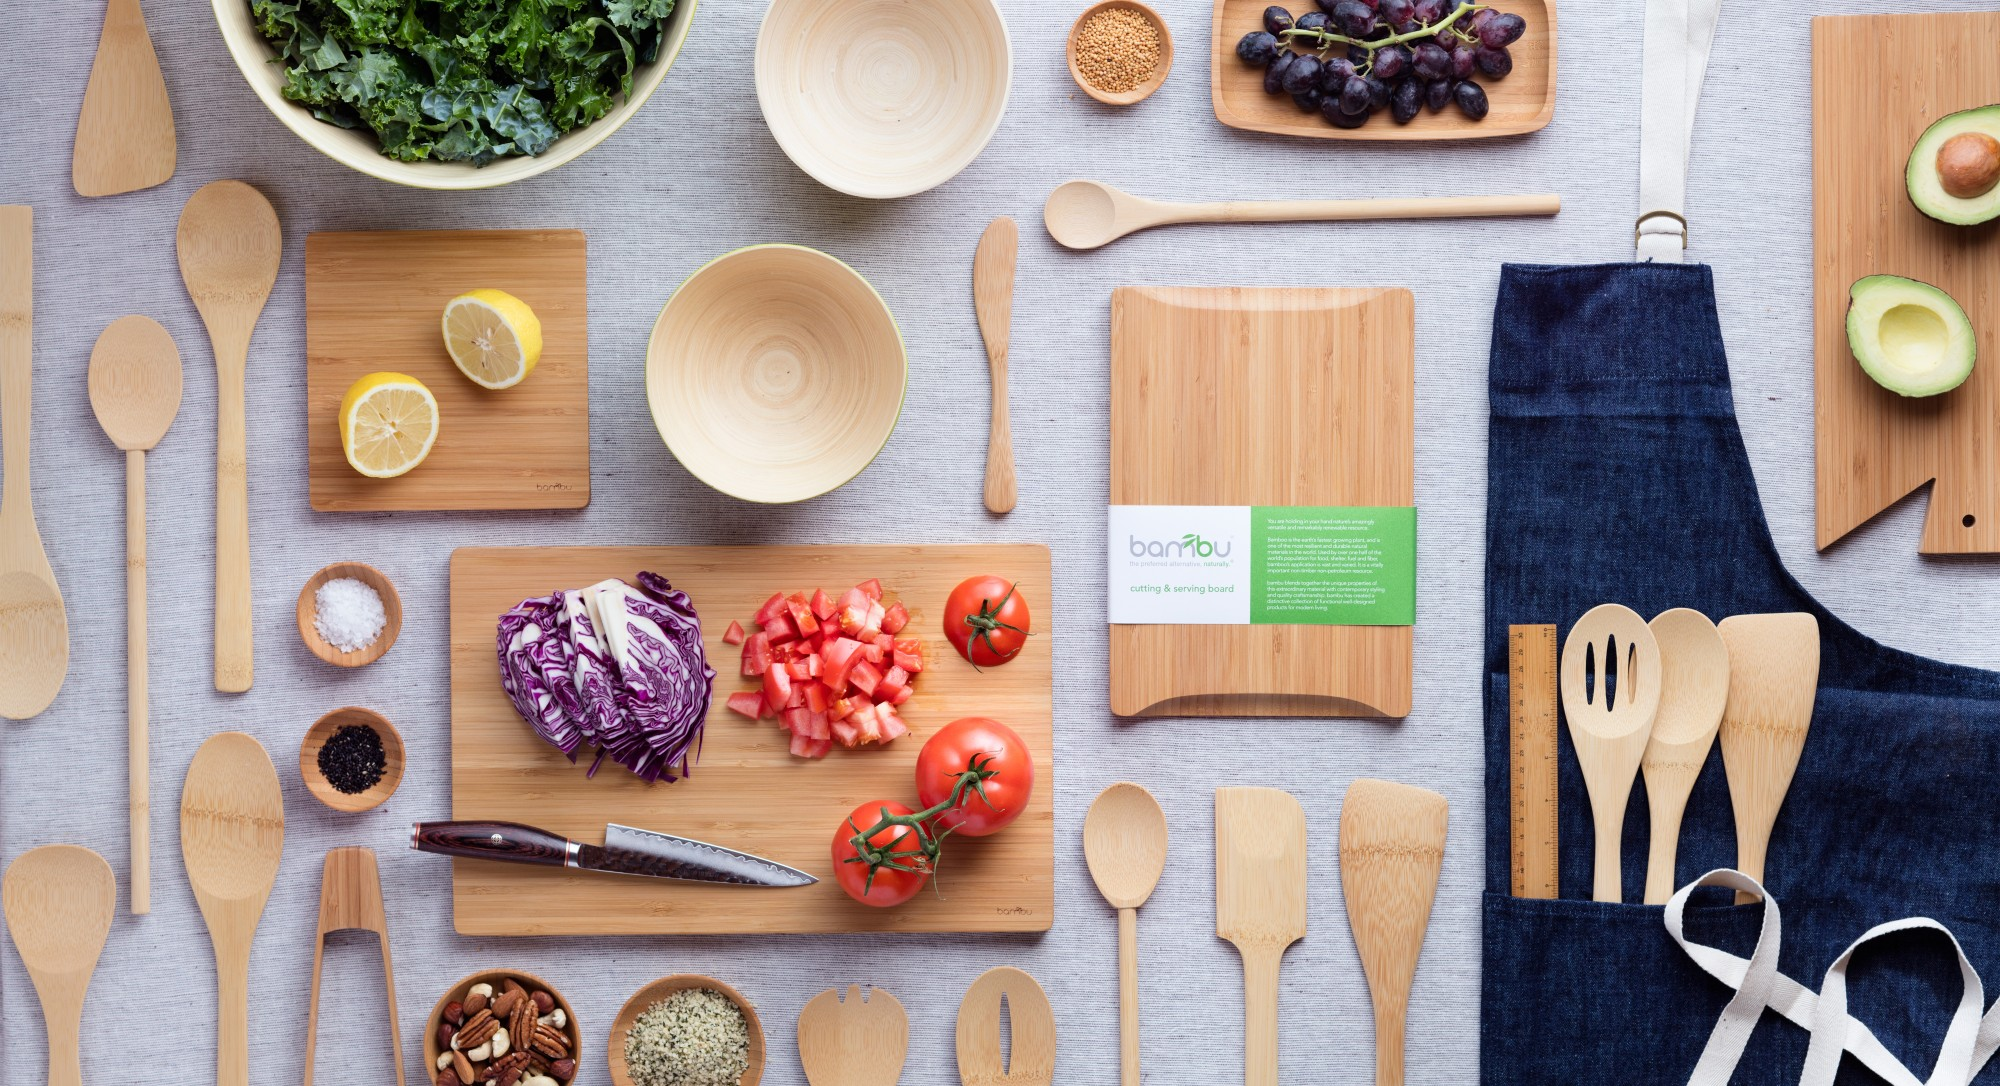 Why Your Kitchen Should Be Stocked with Bamboo, Not Plastic